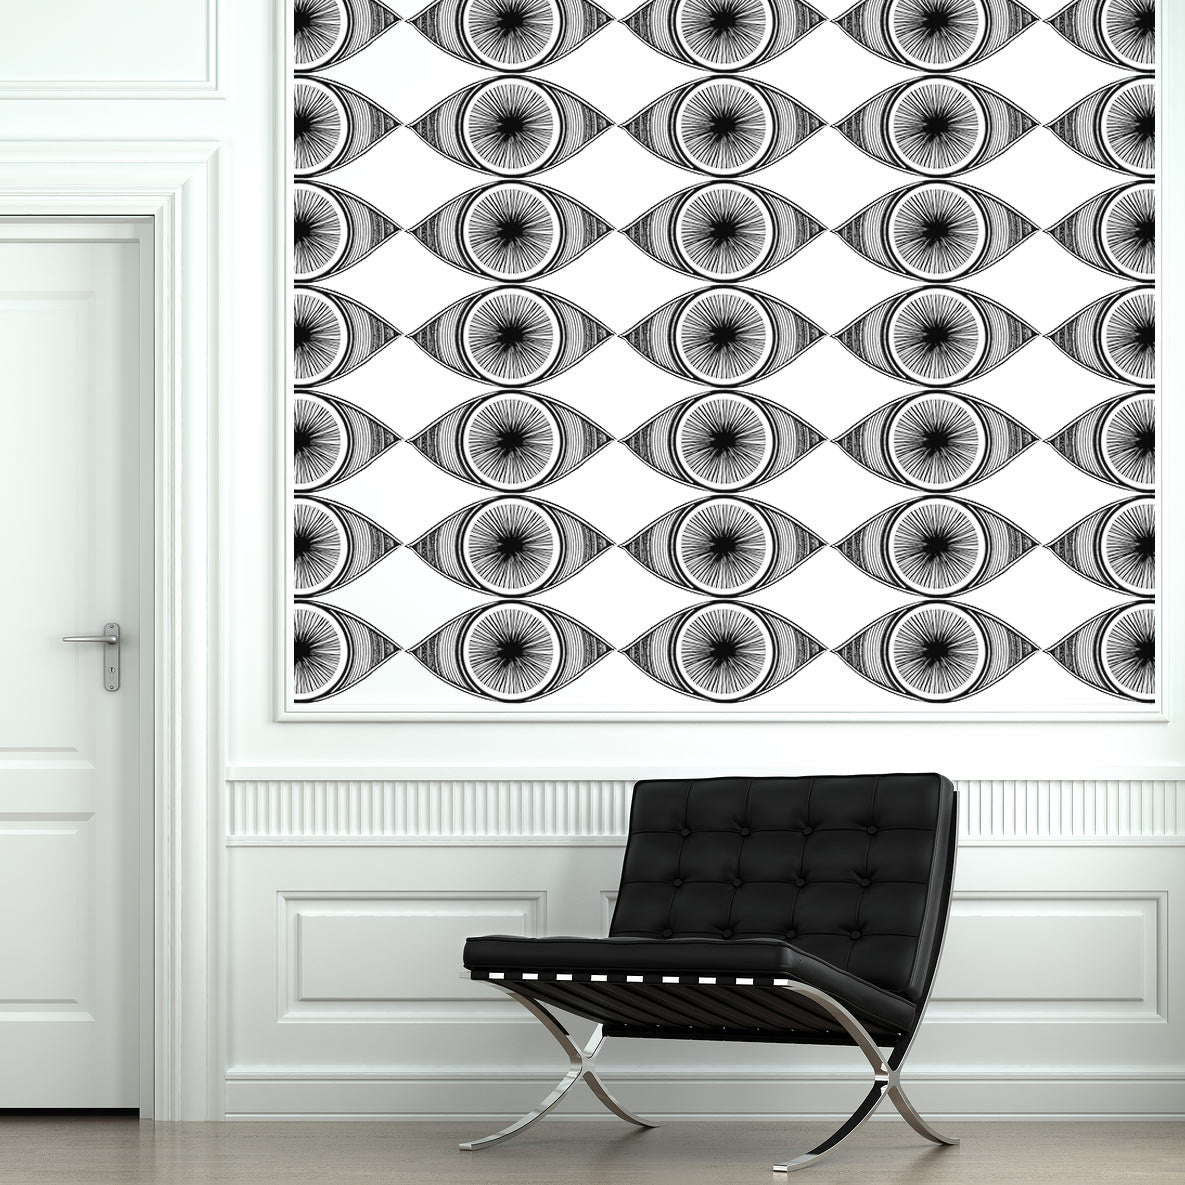 Minds eyes 10 piece fabric wall sticker set conspicuous design eye wall stickers over barcelona chair amipublicfo Images